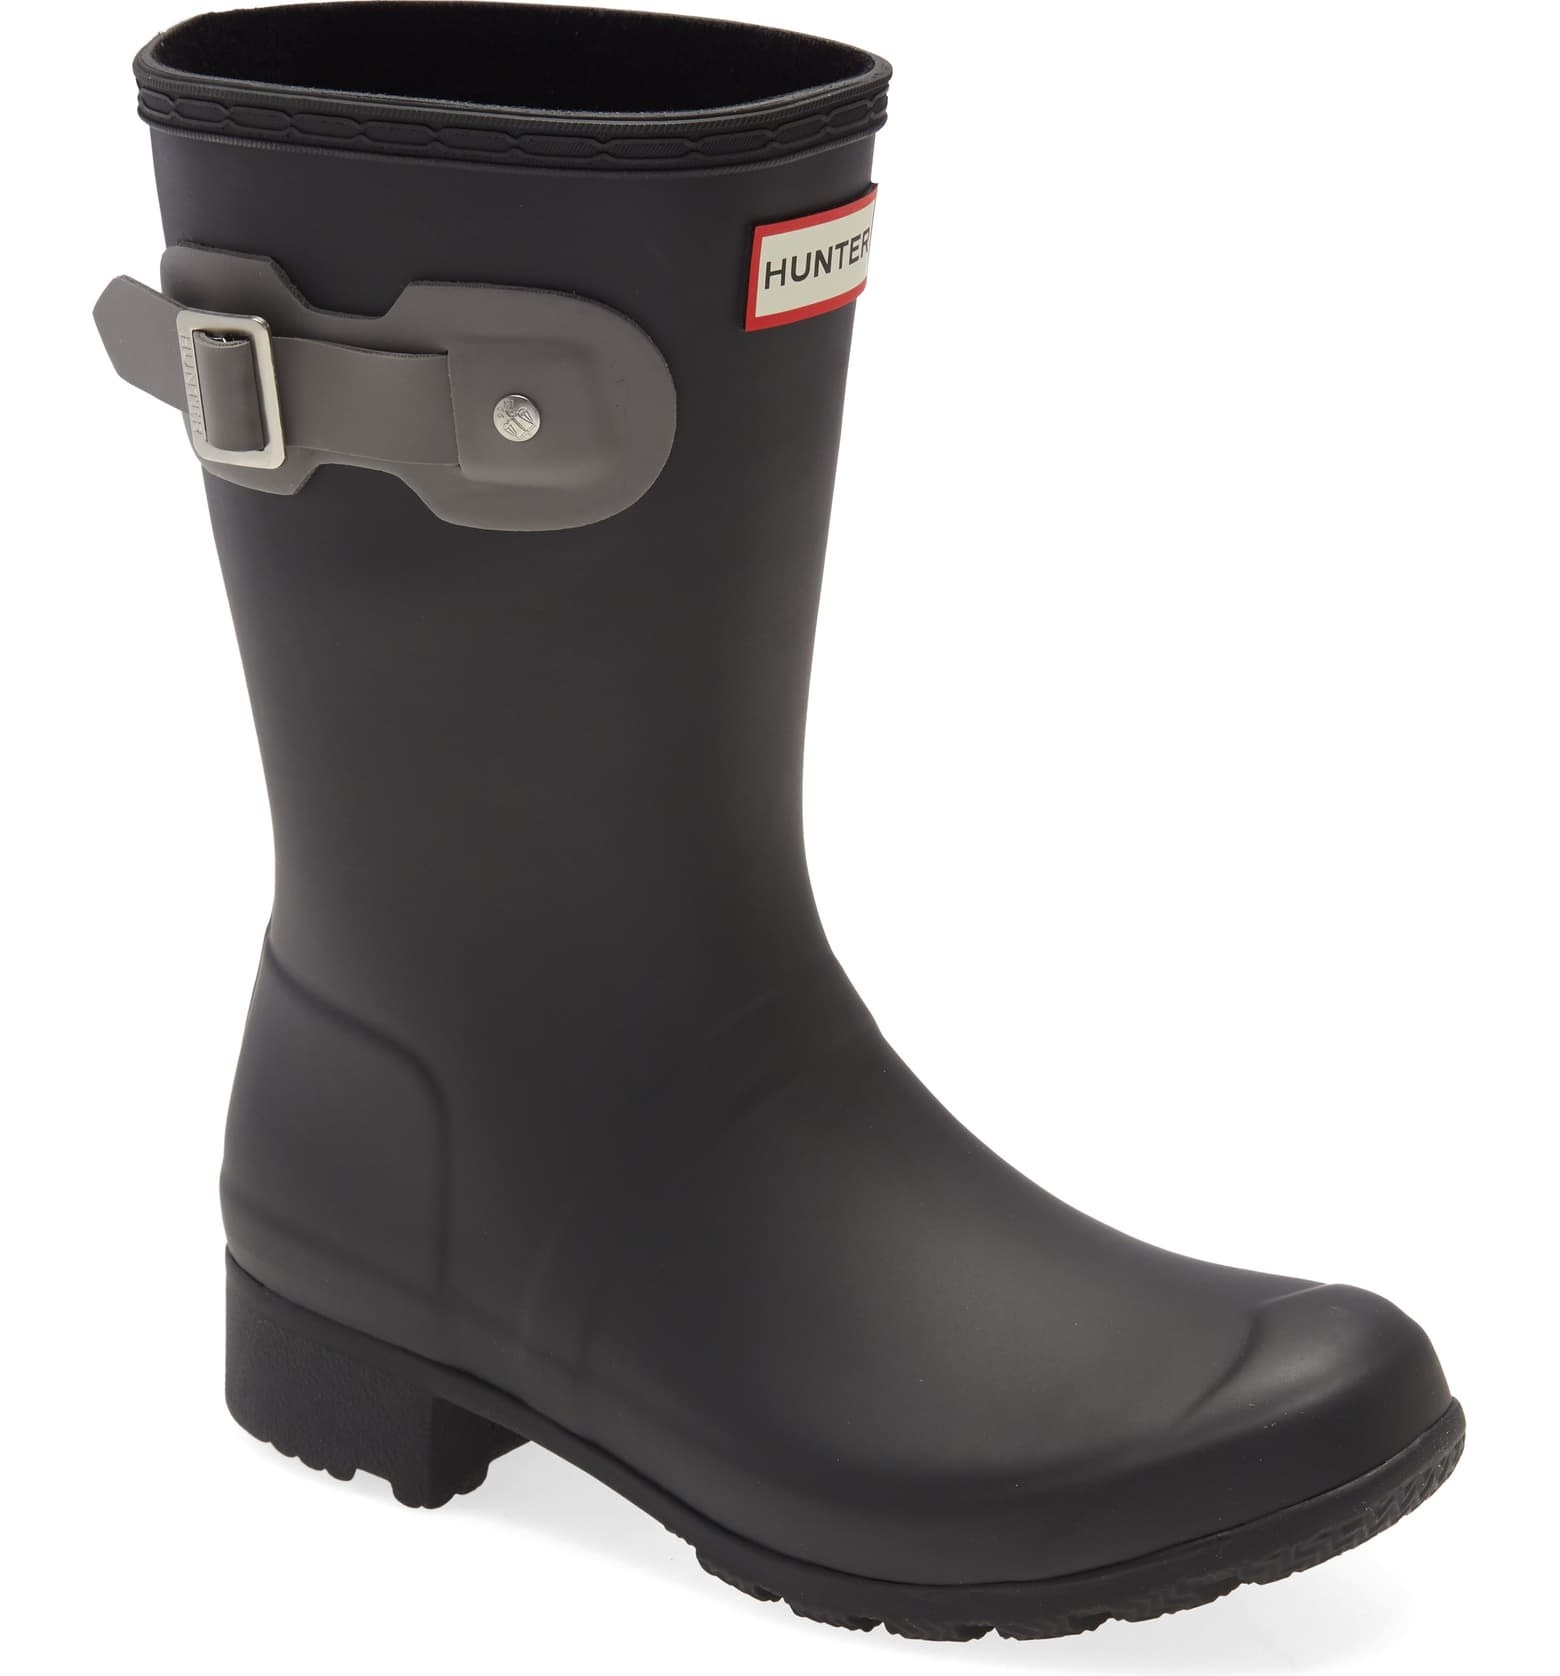 matte black short rubber boots